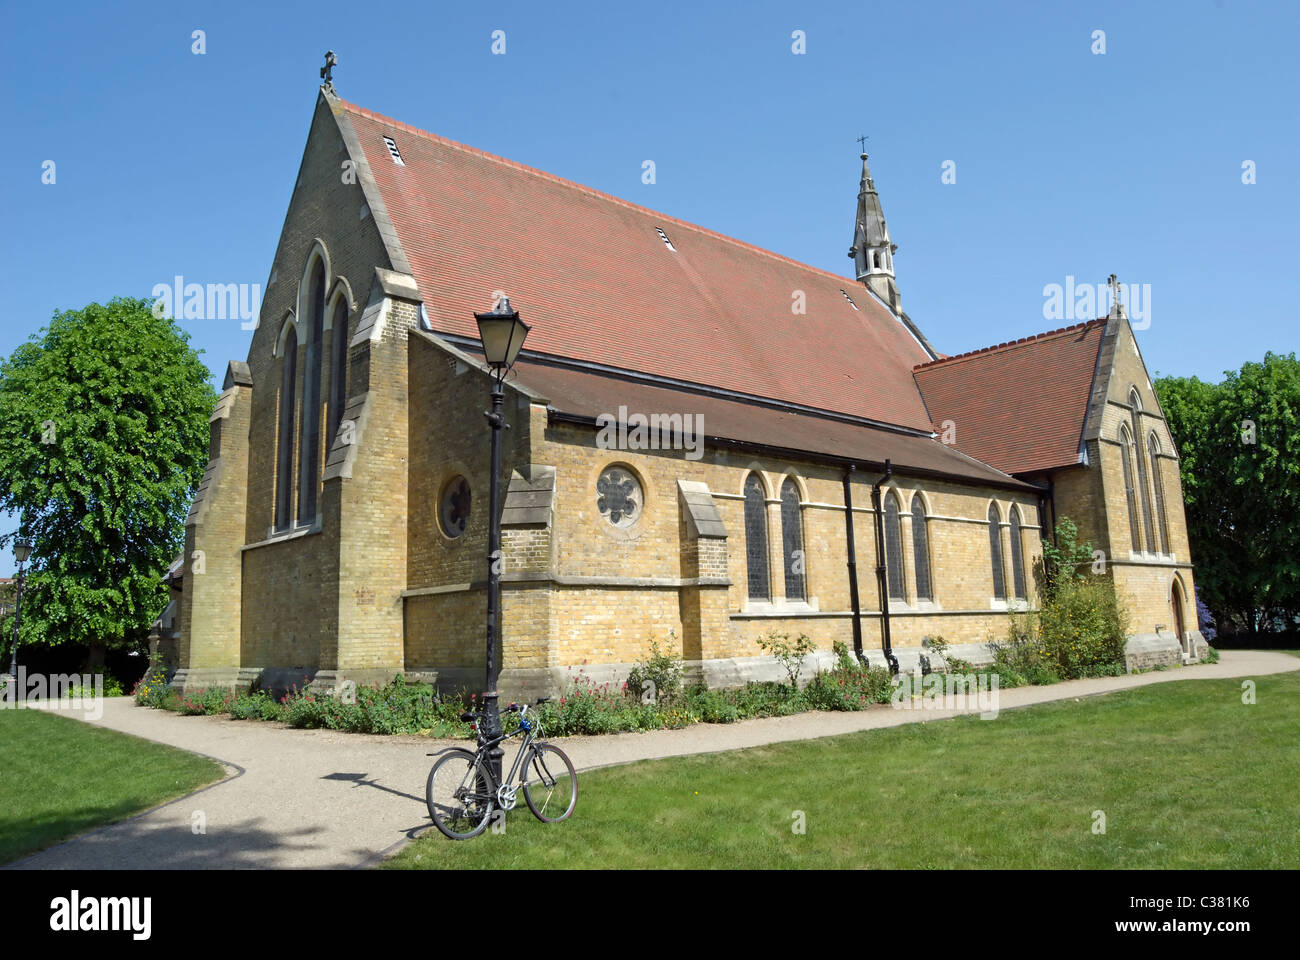 all saints church, putney common, southwest london, england, completed 1874 by architect g.e. street Stock Photo